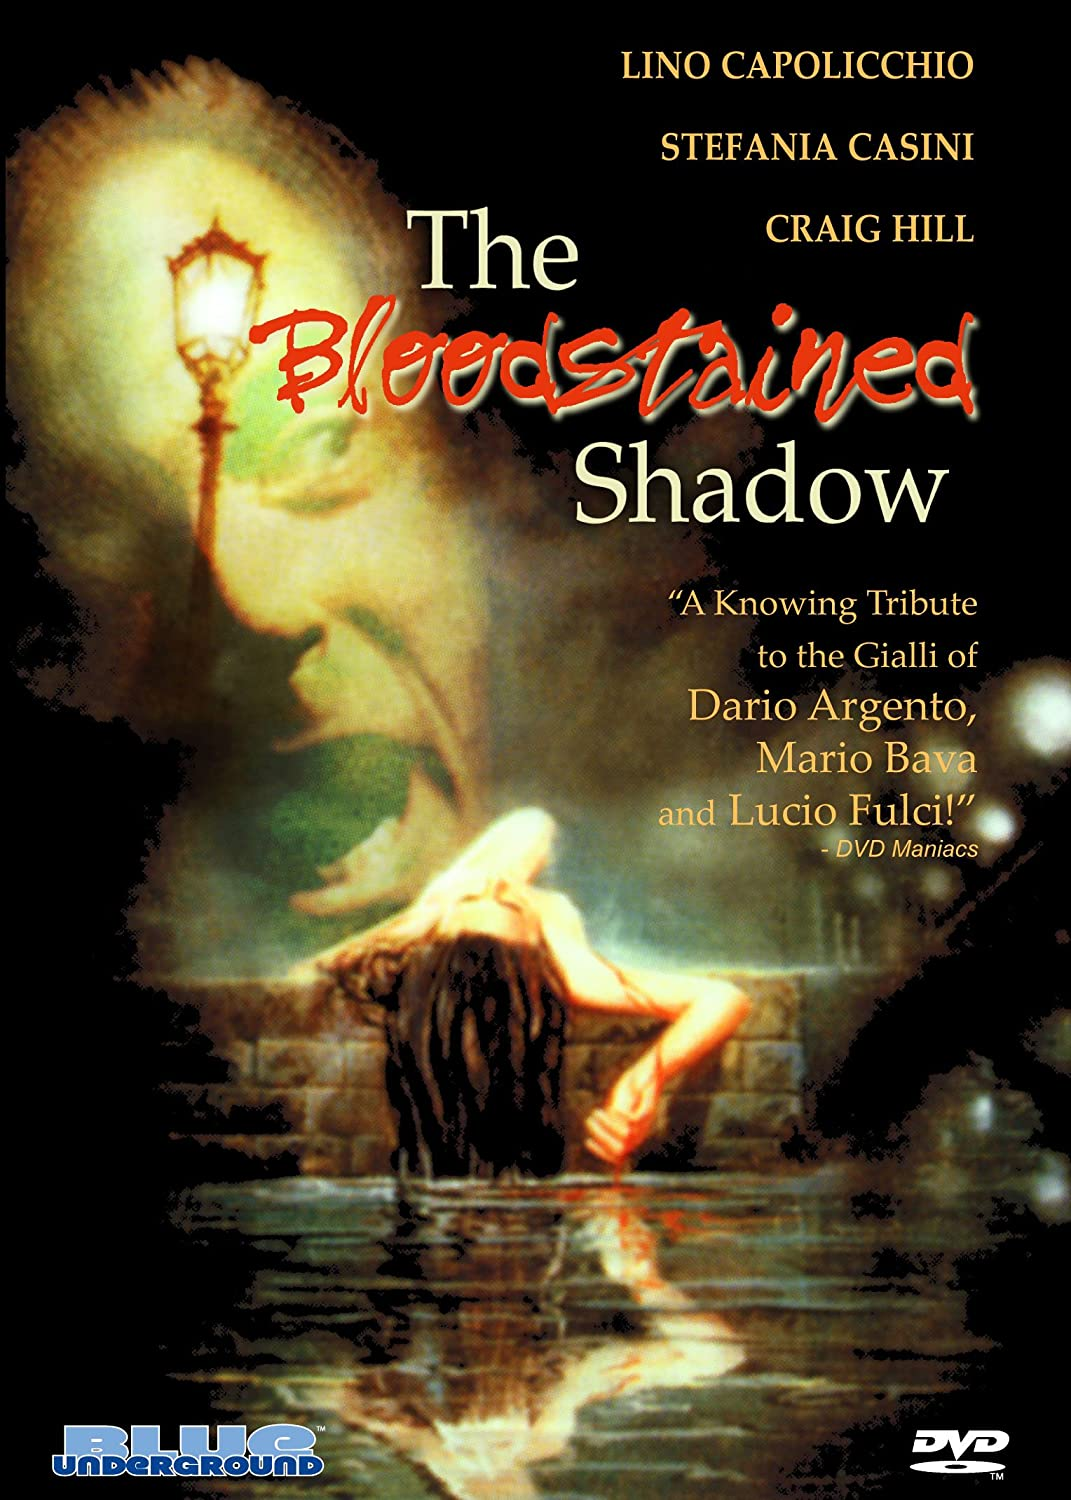 Amazon com: BLOODSTAINED SHADOW, THE: Lino Capolicchio